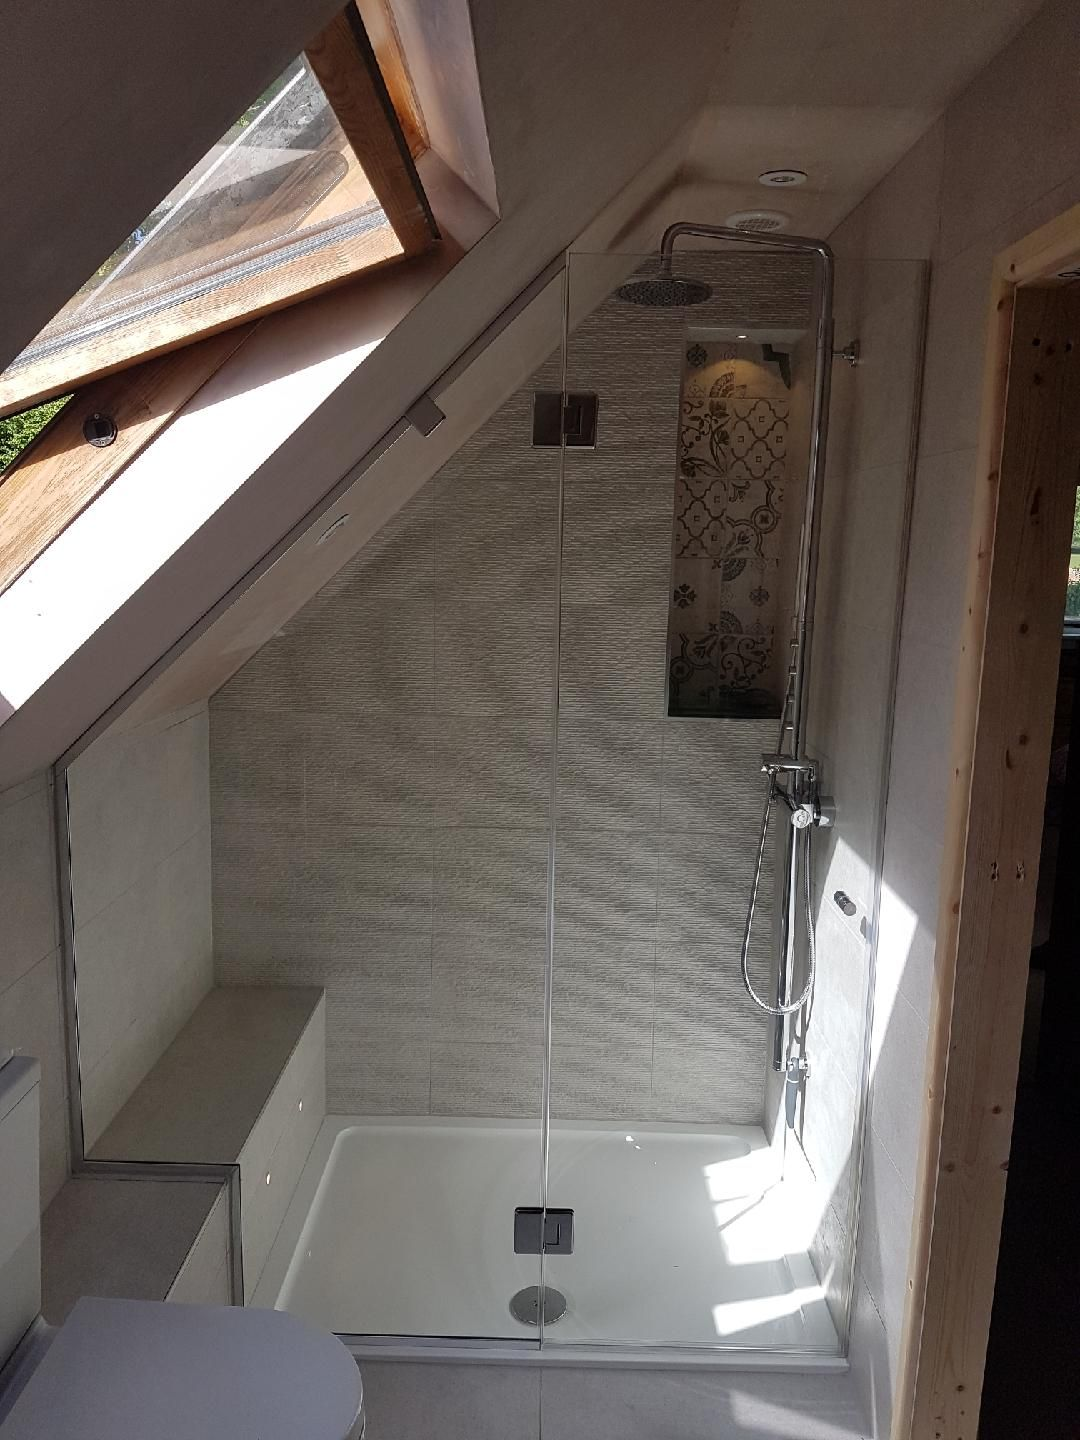 Loft shower enclosure installed over seat near Winchester #loftconversions